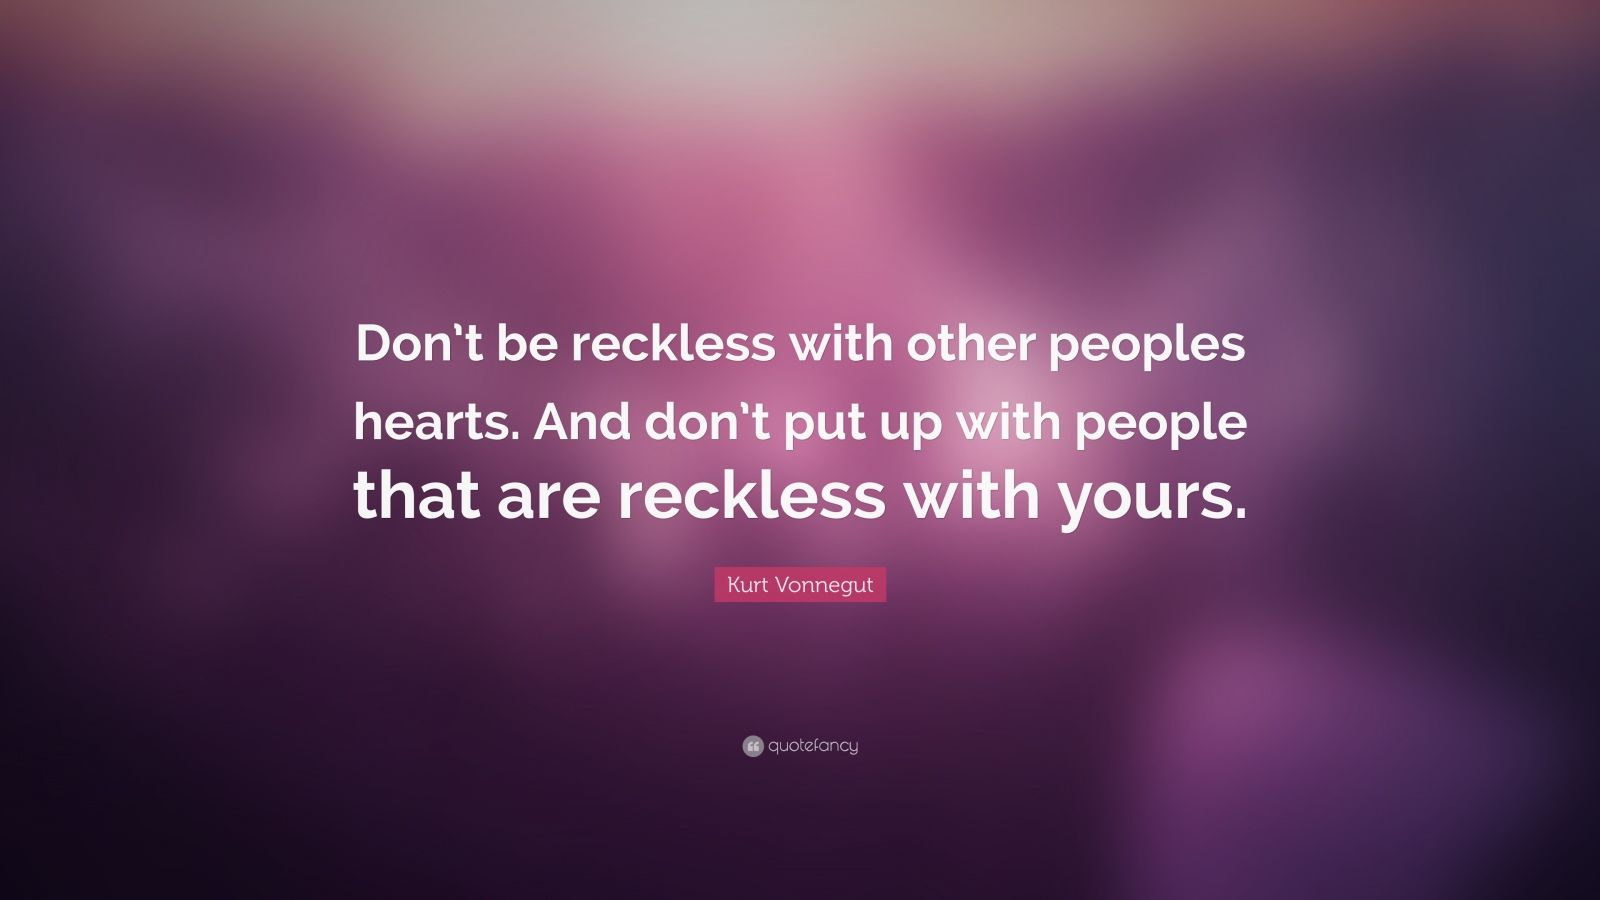 "Kurt Vonnegut Quote: ""Don't be reckless with other peoples hearts. And don't put up with people that are reckless with yours."""